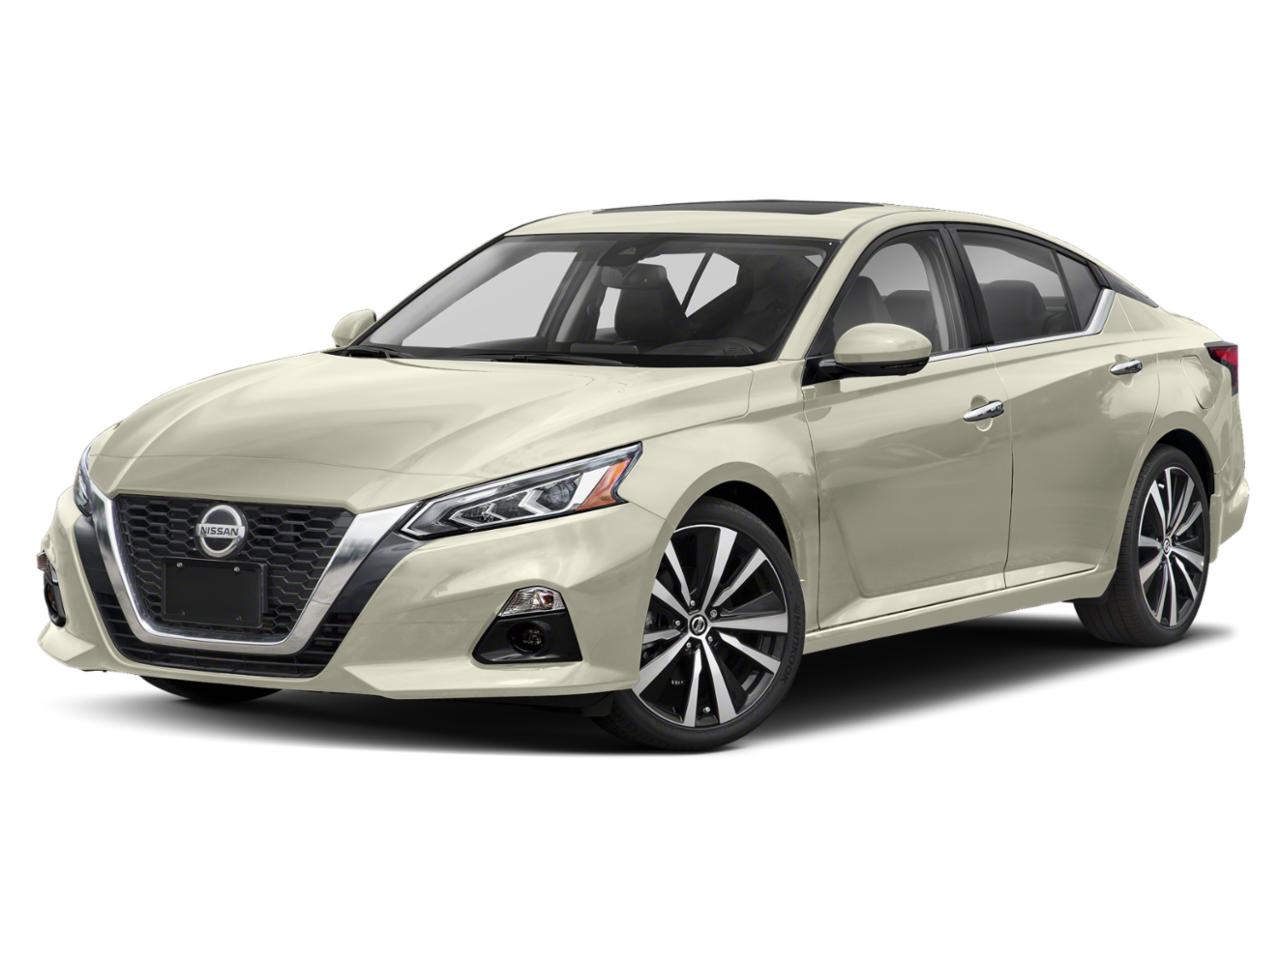 2020 Nissan Altima 2.5 SL 4dr Car Slide